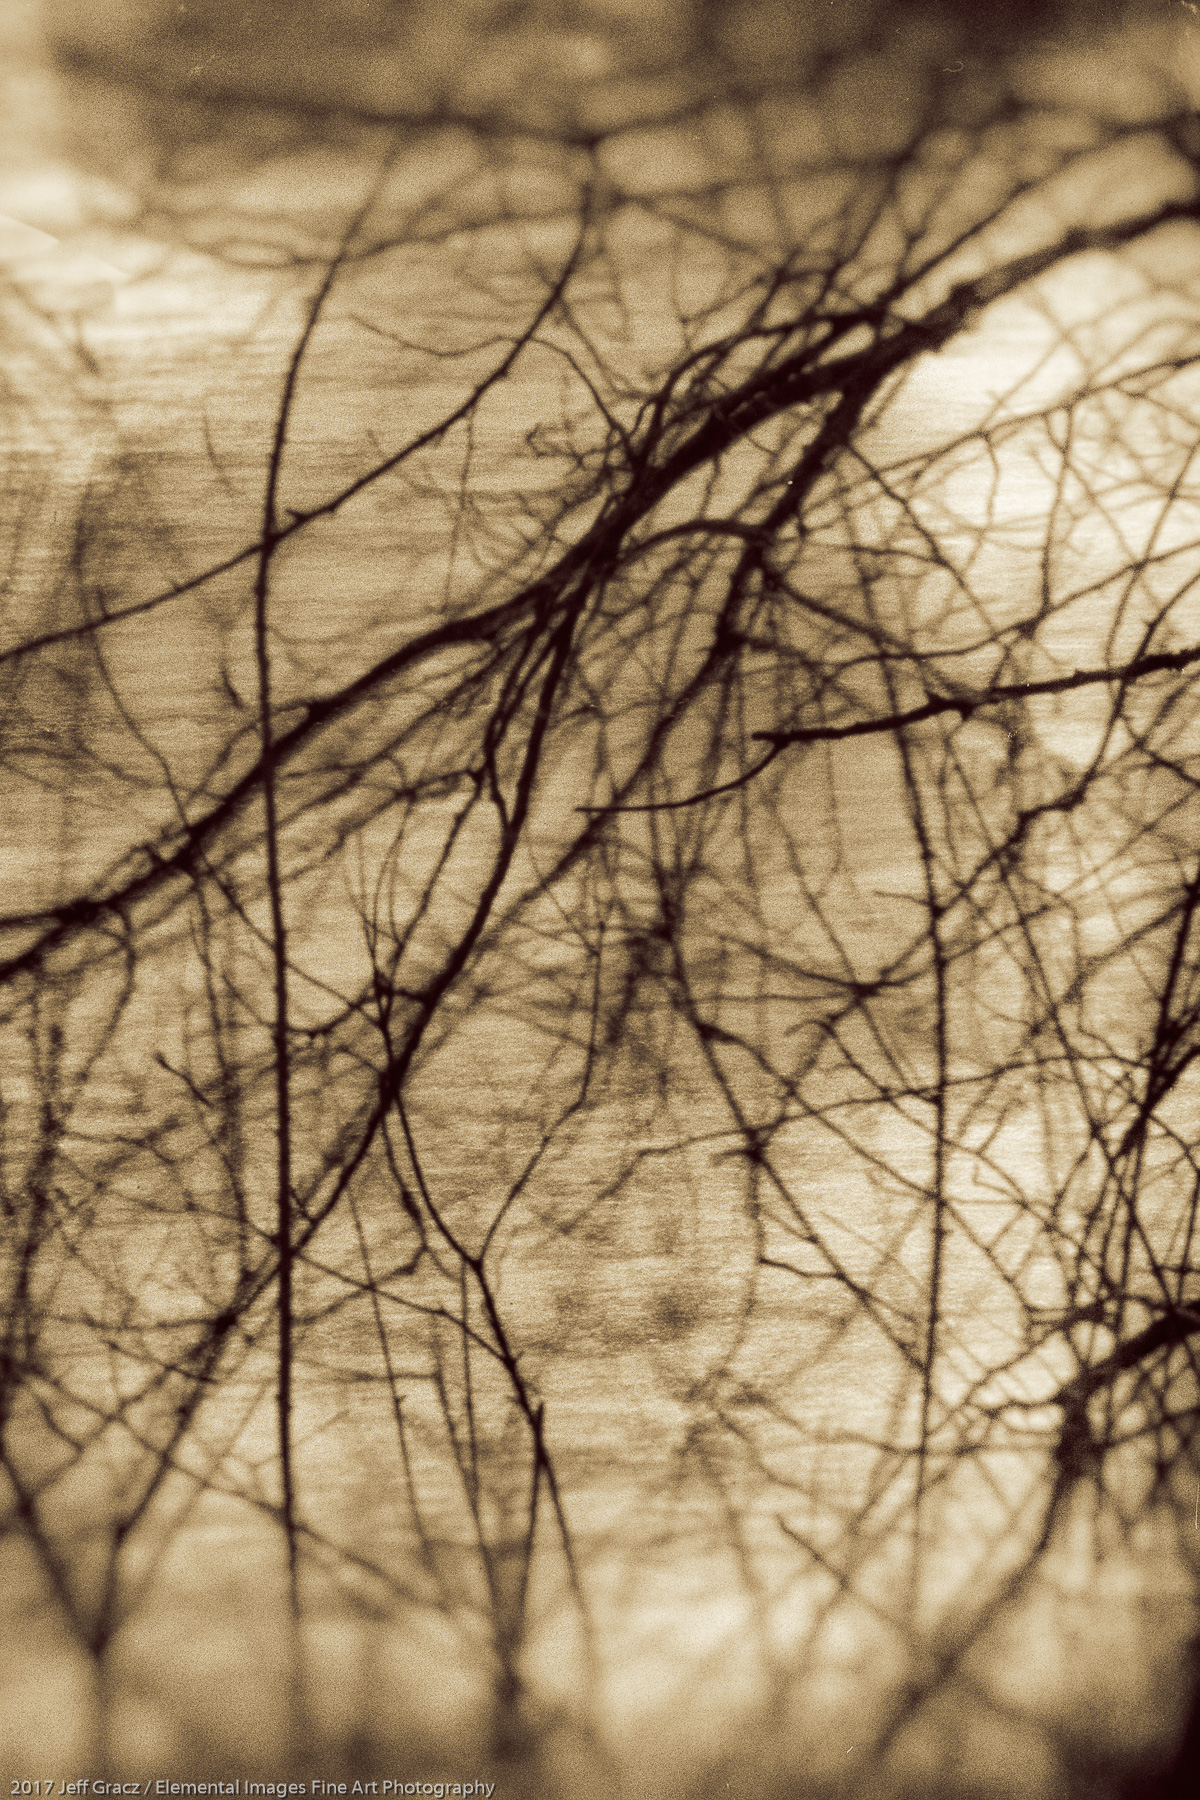 Branches #27   Washougal   WA   USA - © 2017 Jeff Gracz / Elemental Images Fine Art Photography - All Rights Reserved Worldwide